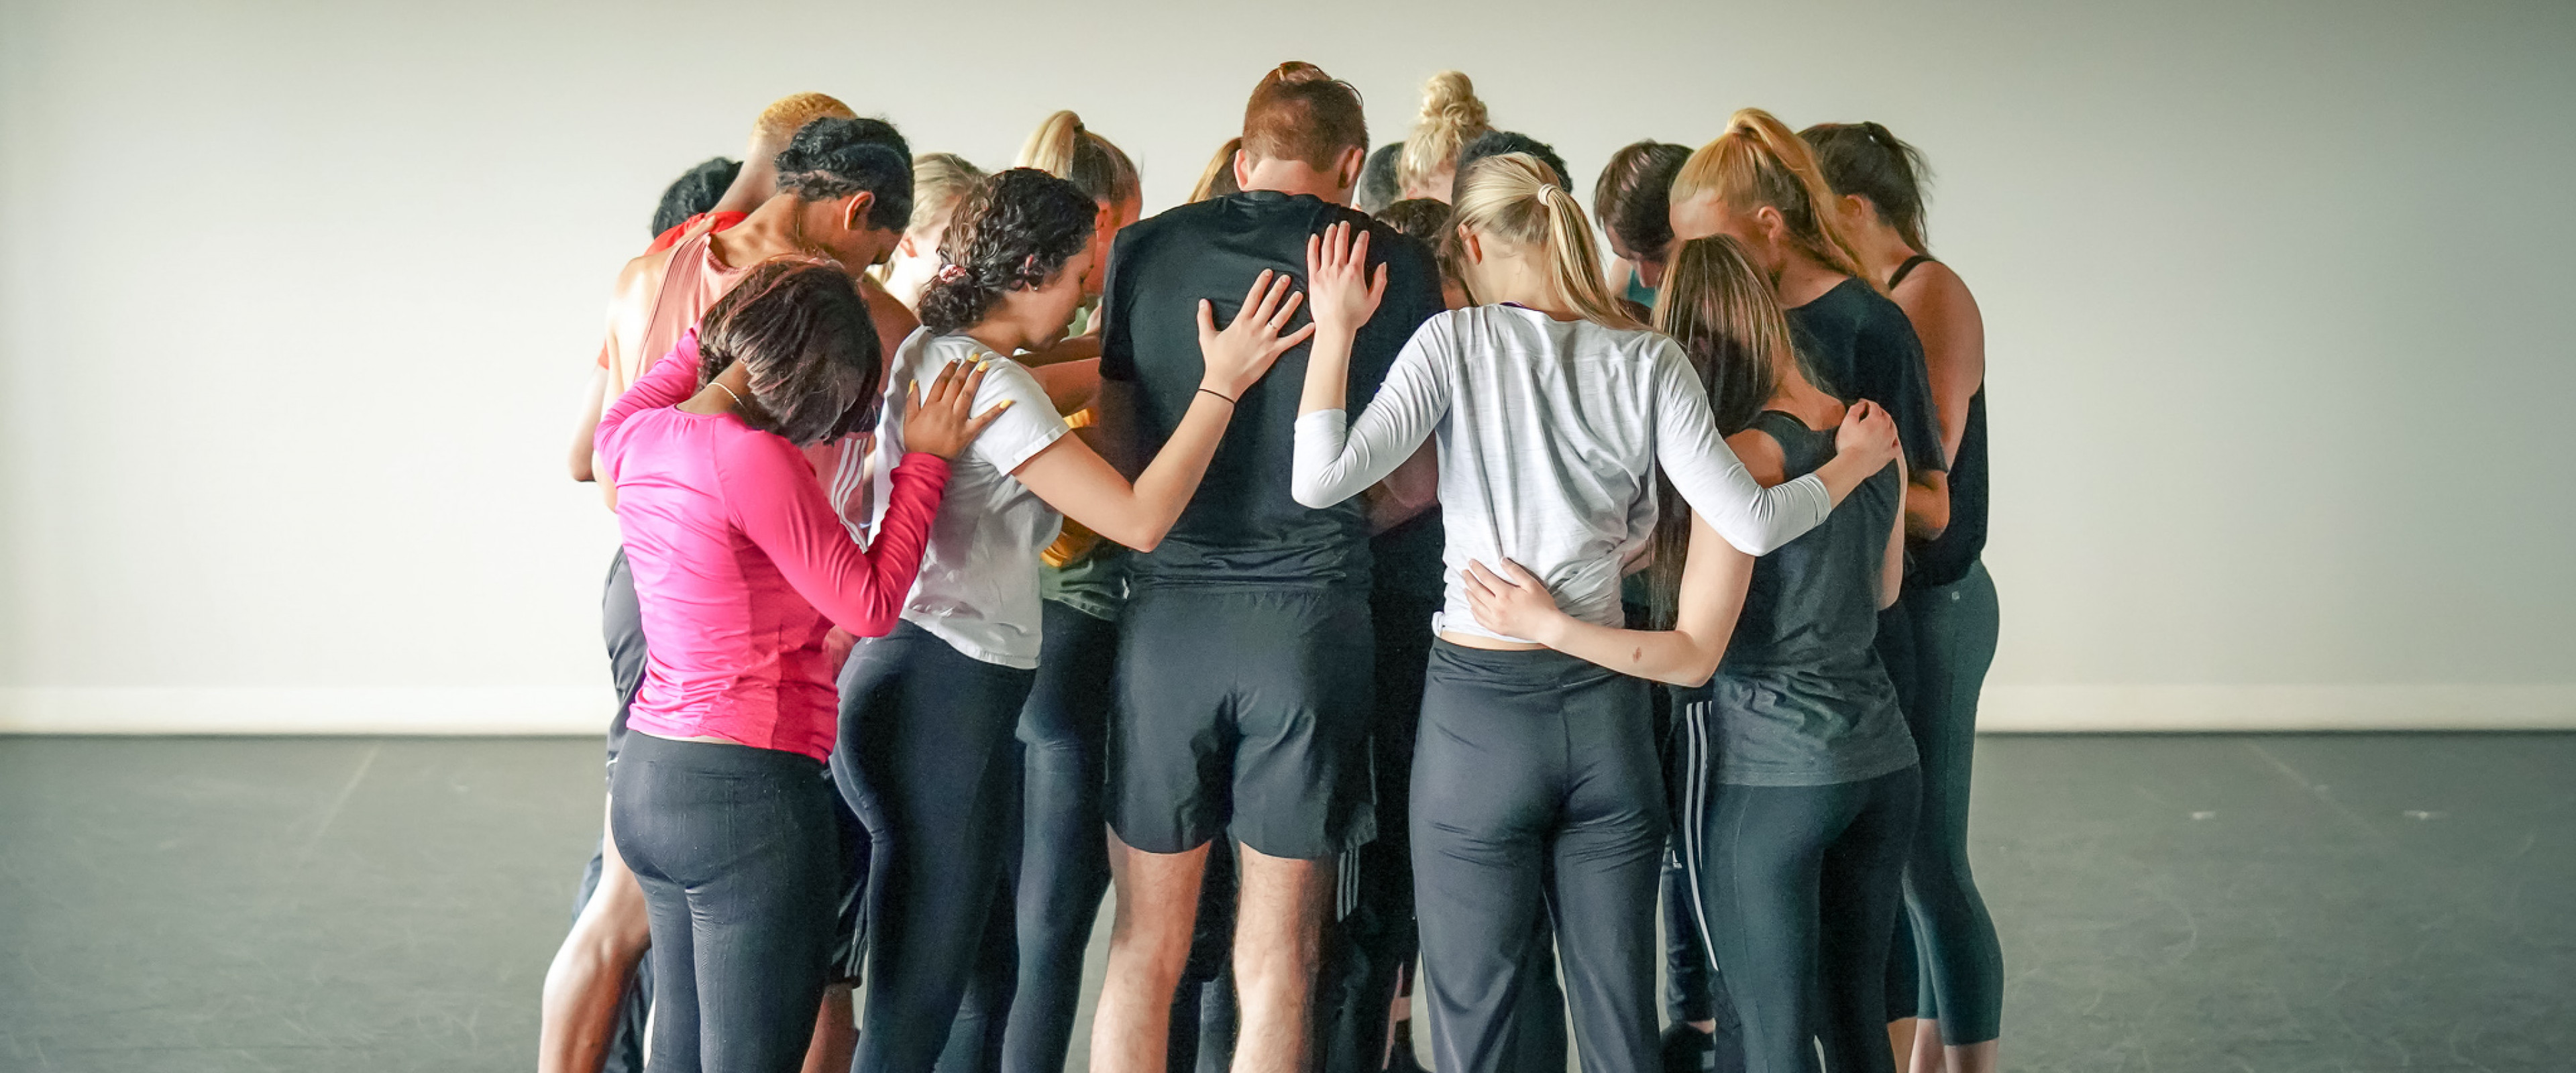 Large group of dancers in a hundle, supporting each other.